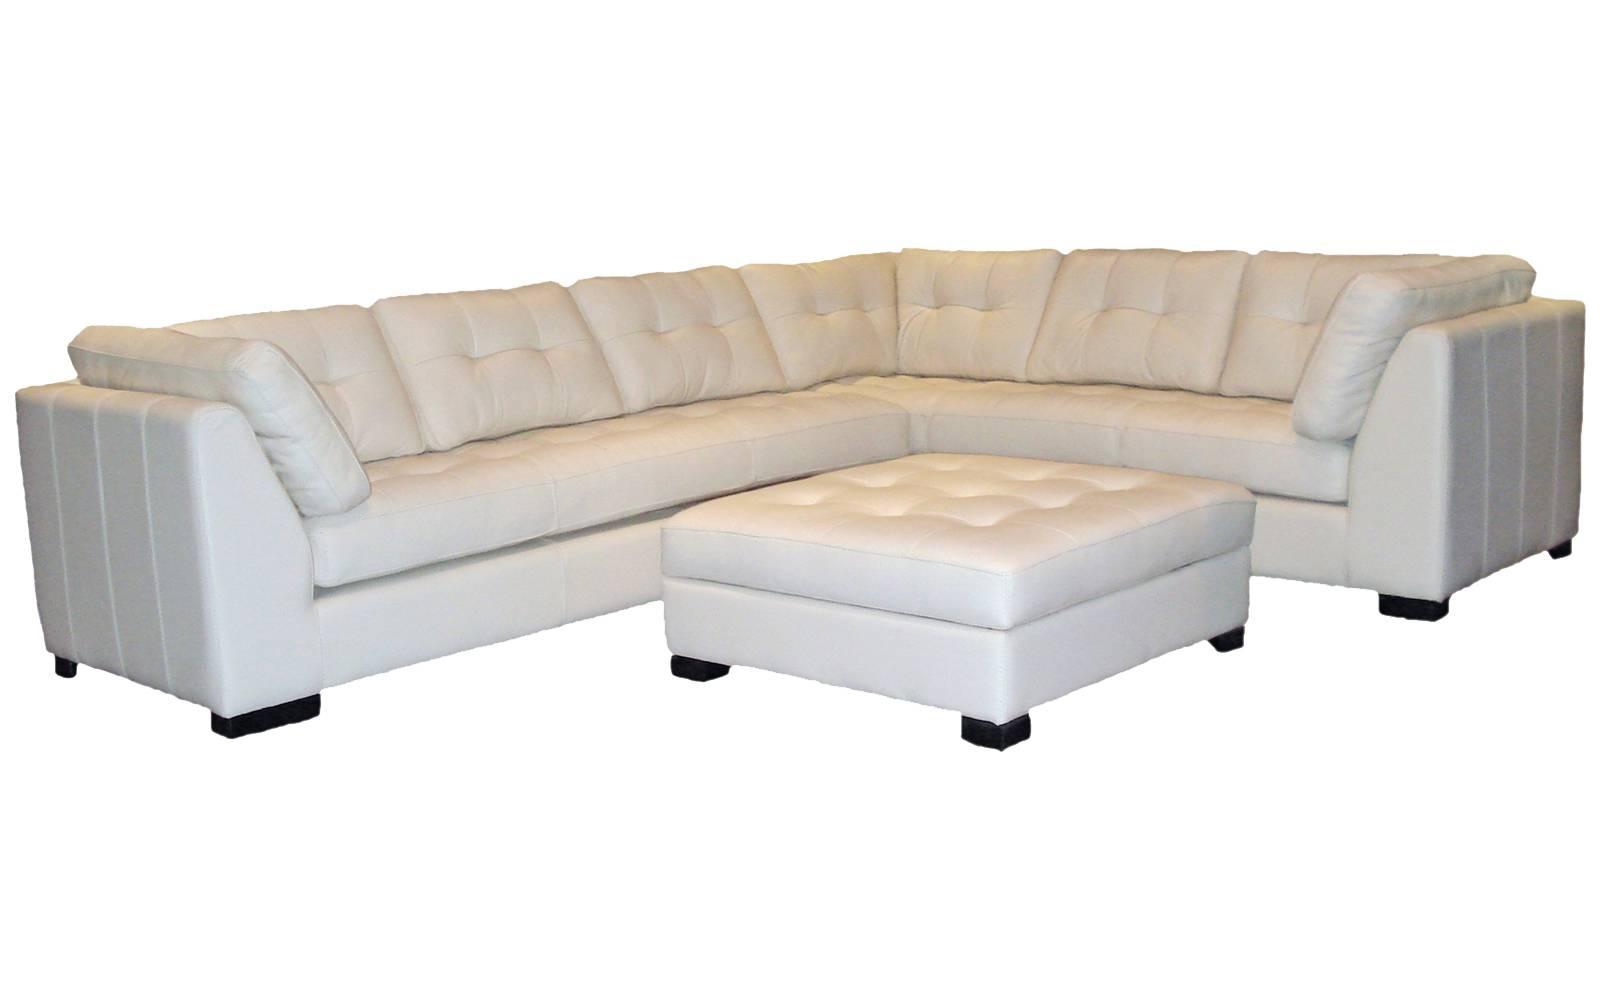 Newport Sofa Available – Omnia Leather throughout Newport Sofas (Image 18 of 30)